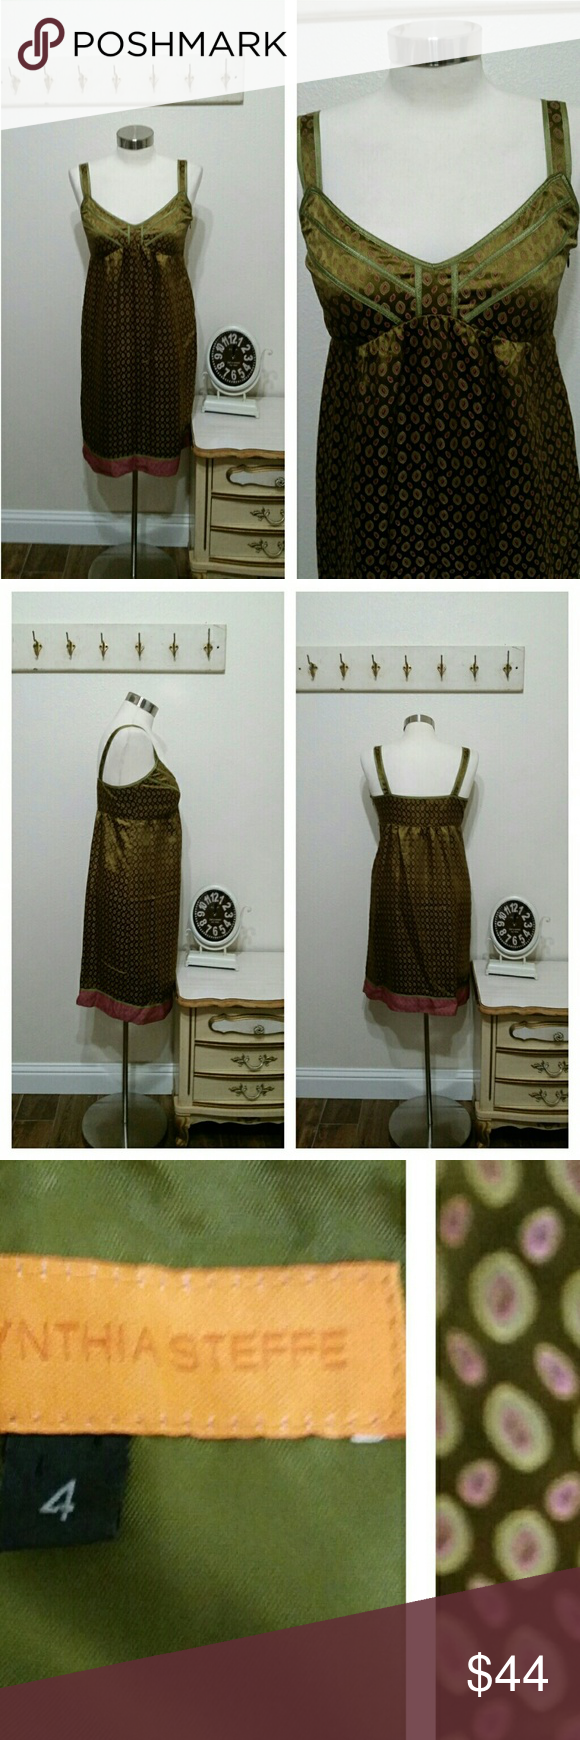 "Cynthia Steffie Sundress, shimmery print, olive 4 Cute designer dress Stappy Empire Waist Side zipper Fully Lined  Size 4  Measurements:   34"" bust 38"" Mid Section Full hip to 40"" 36"" Length  Excellent condition   Feel free to ask questions. Cynthia Steffe Dresses"